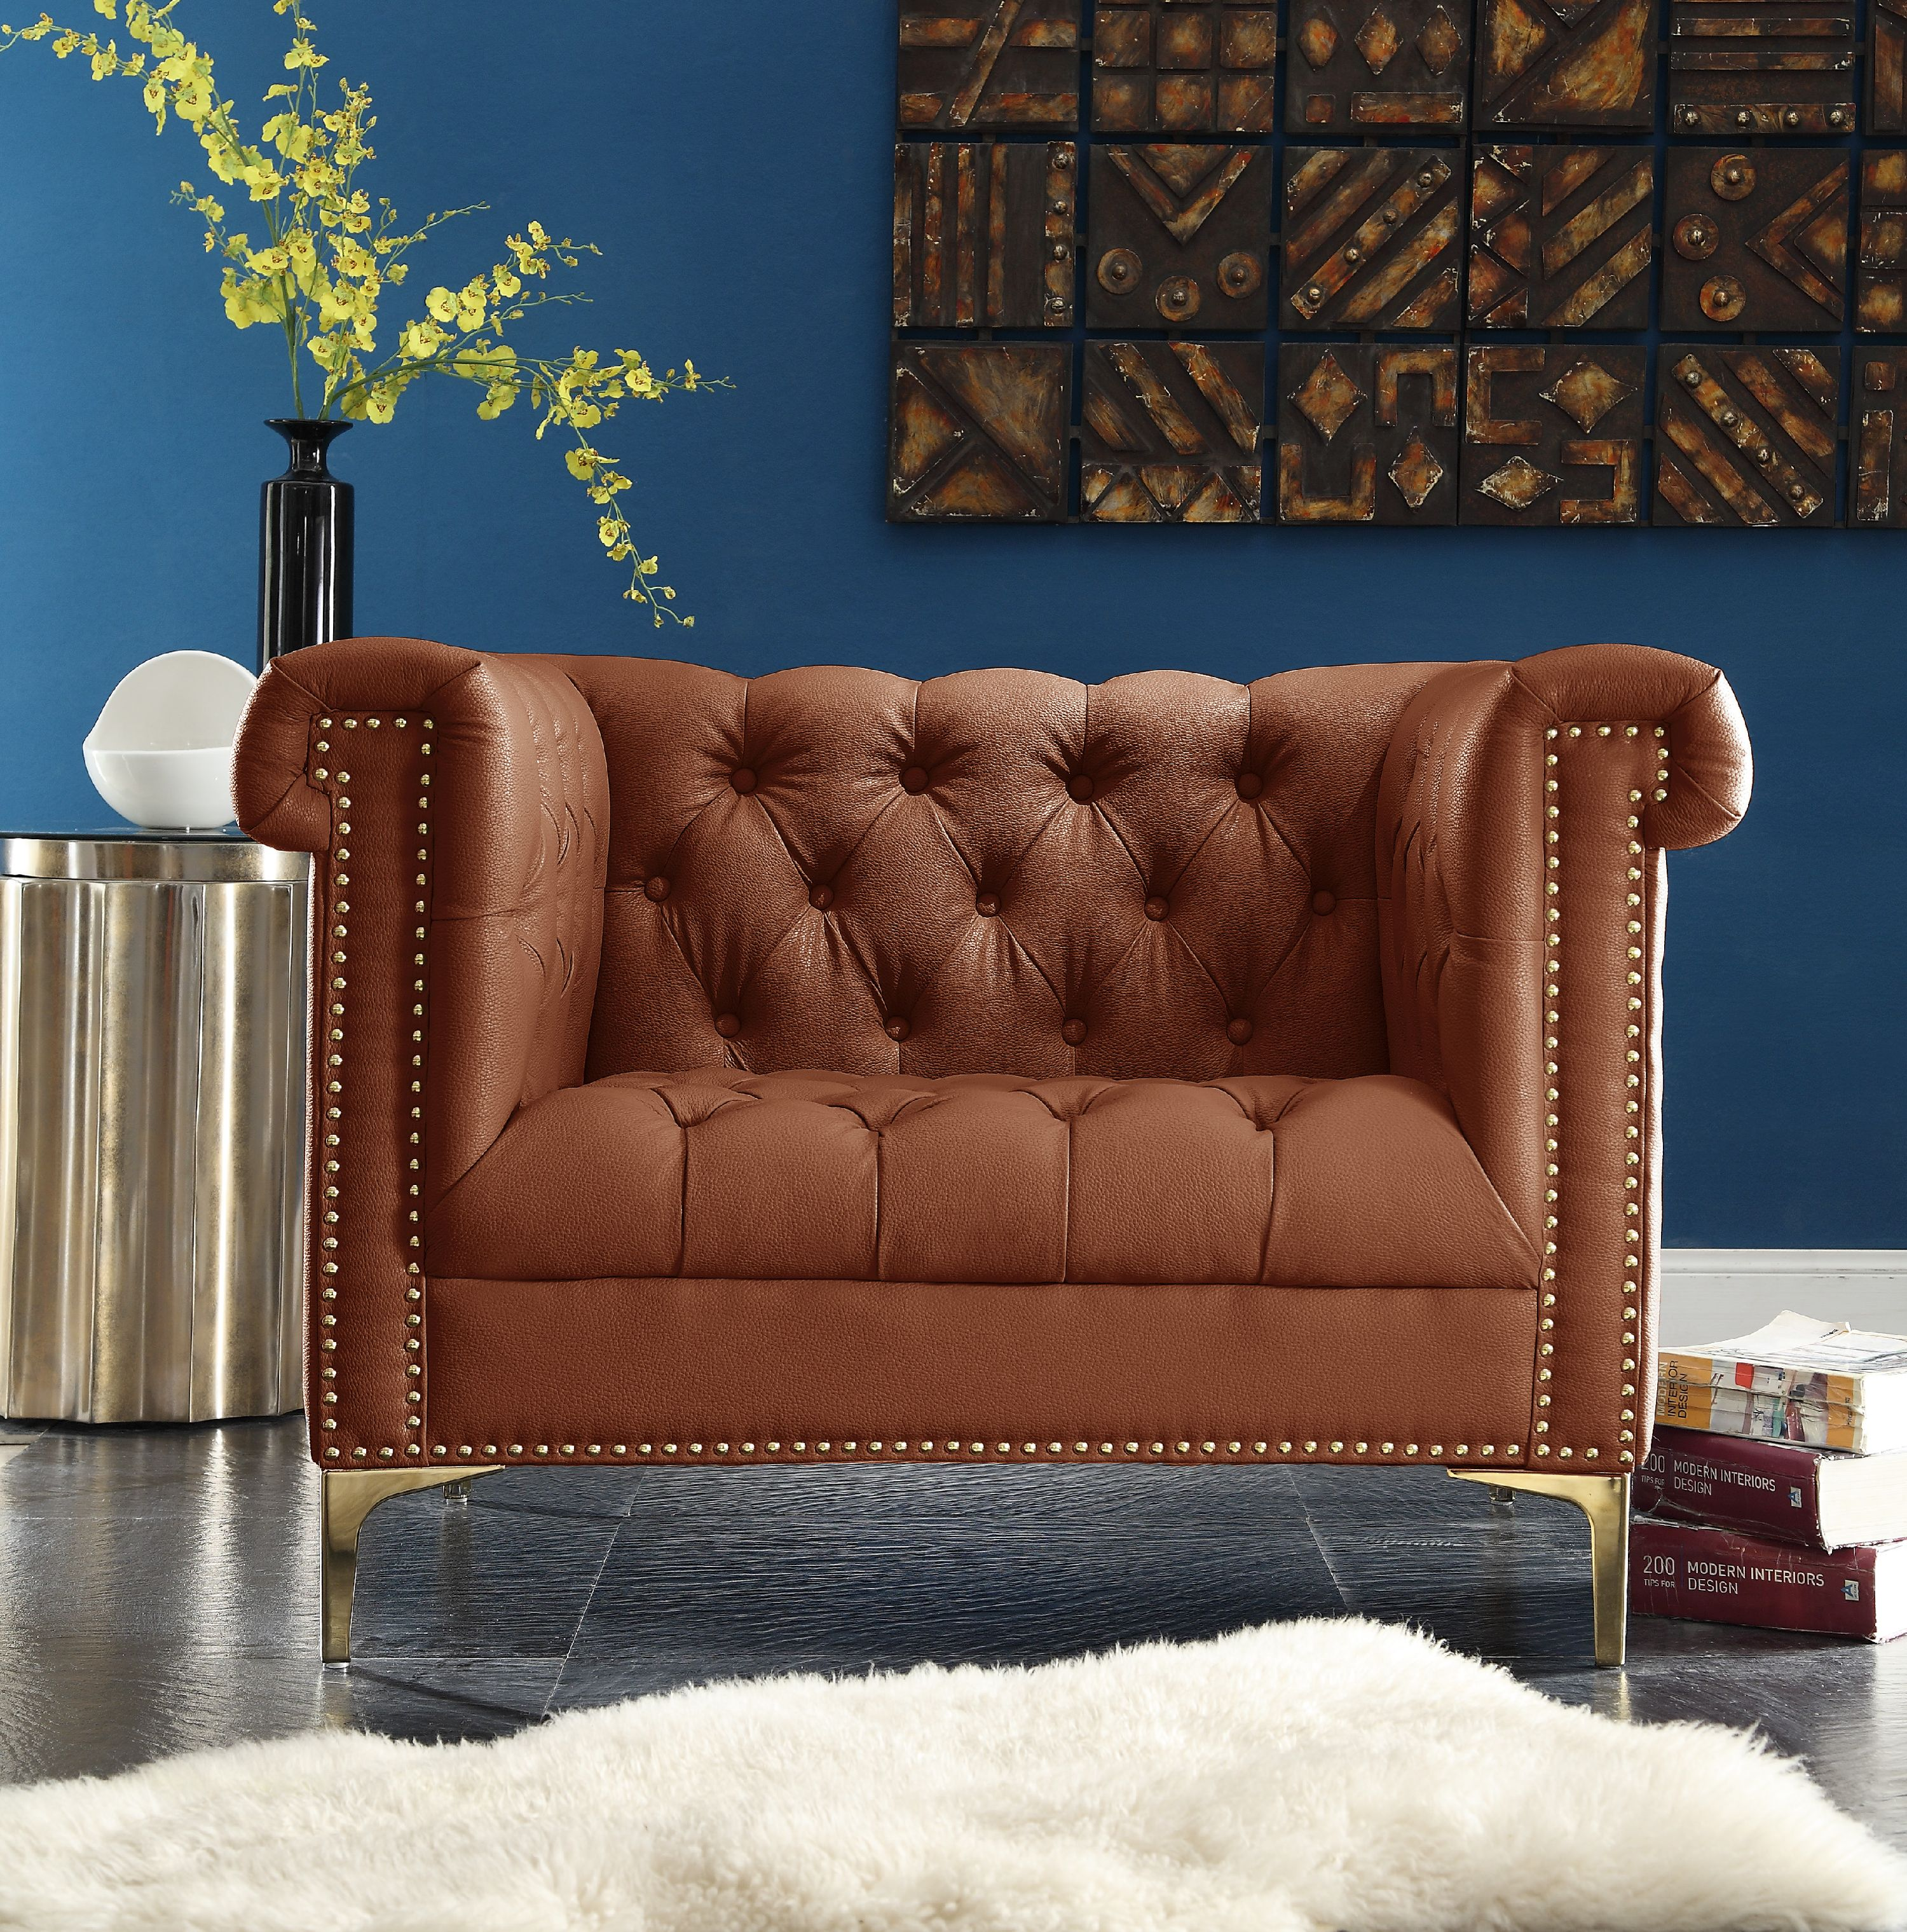 Chic Home Patton PU Leather Modern Contemporary Button Tufted with Gold Nailhead Trim Goldtone Metal Y-leg Club Chair,... by Chic Home